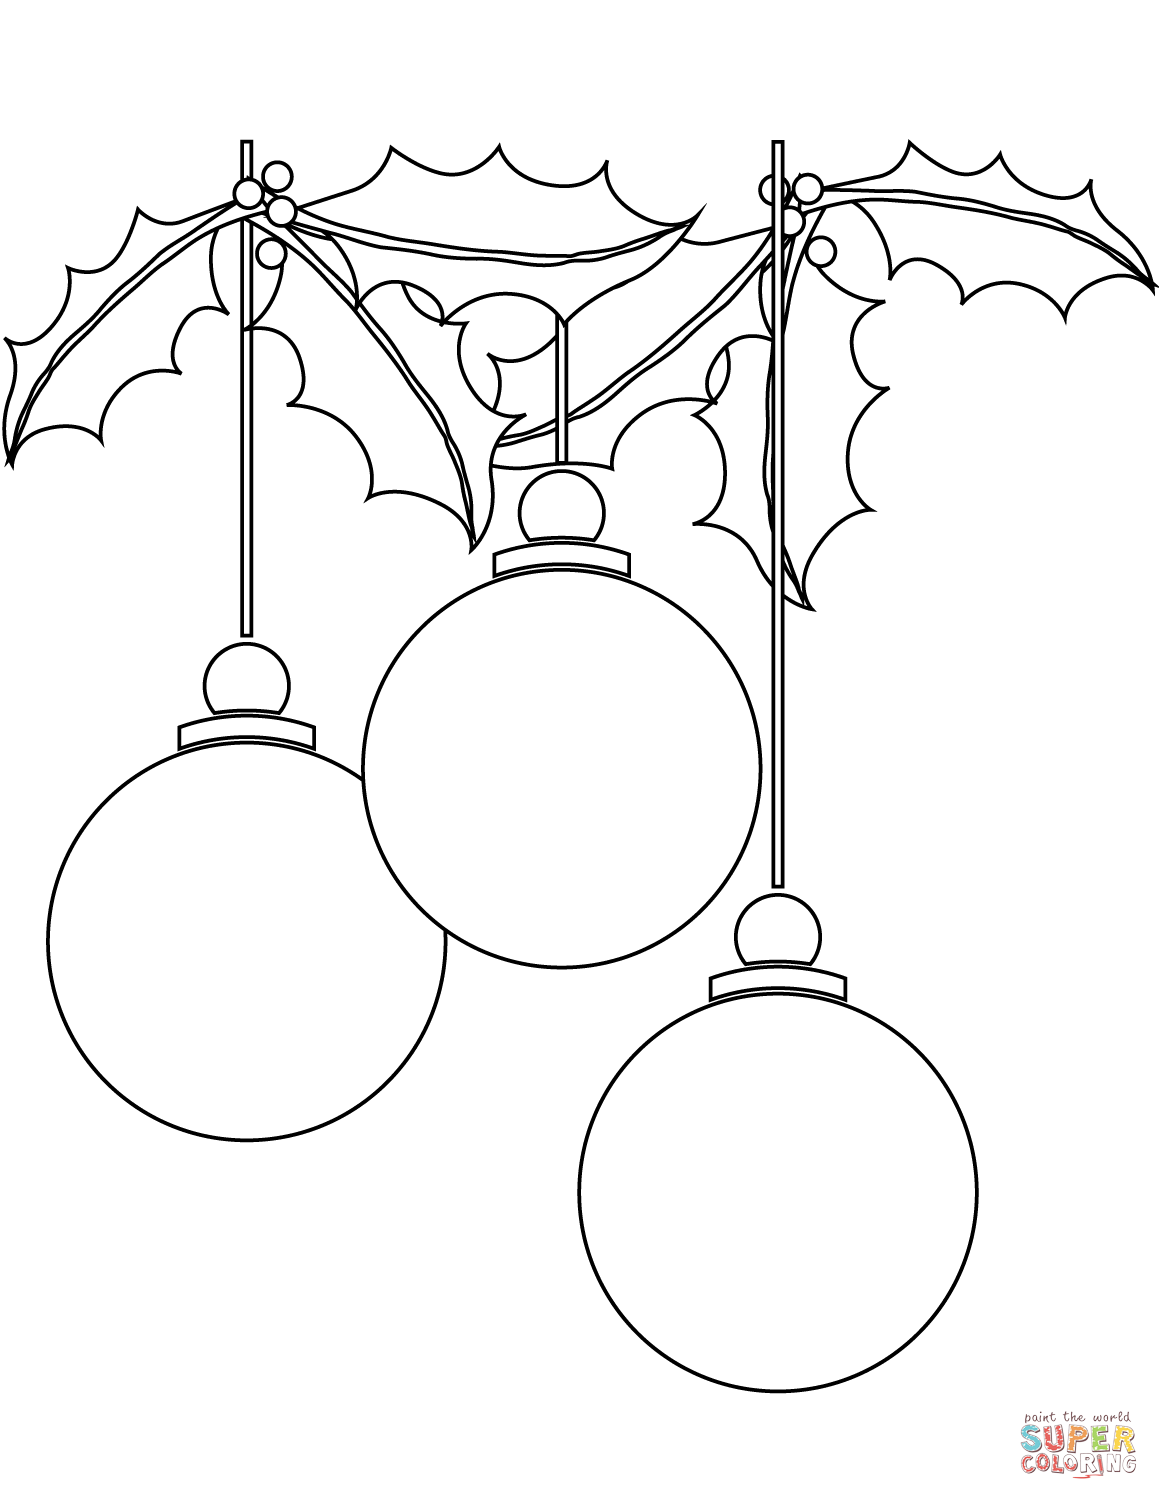 Christmas Ball Ornaments Coloring Page Free Printable Coloring Pages